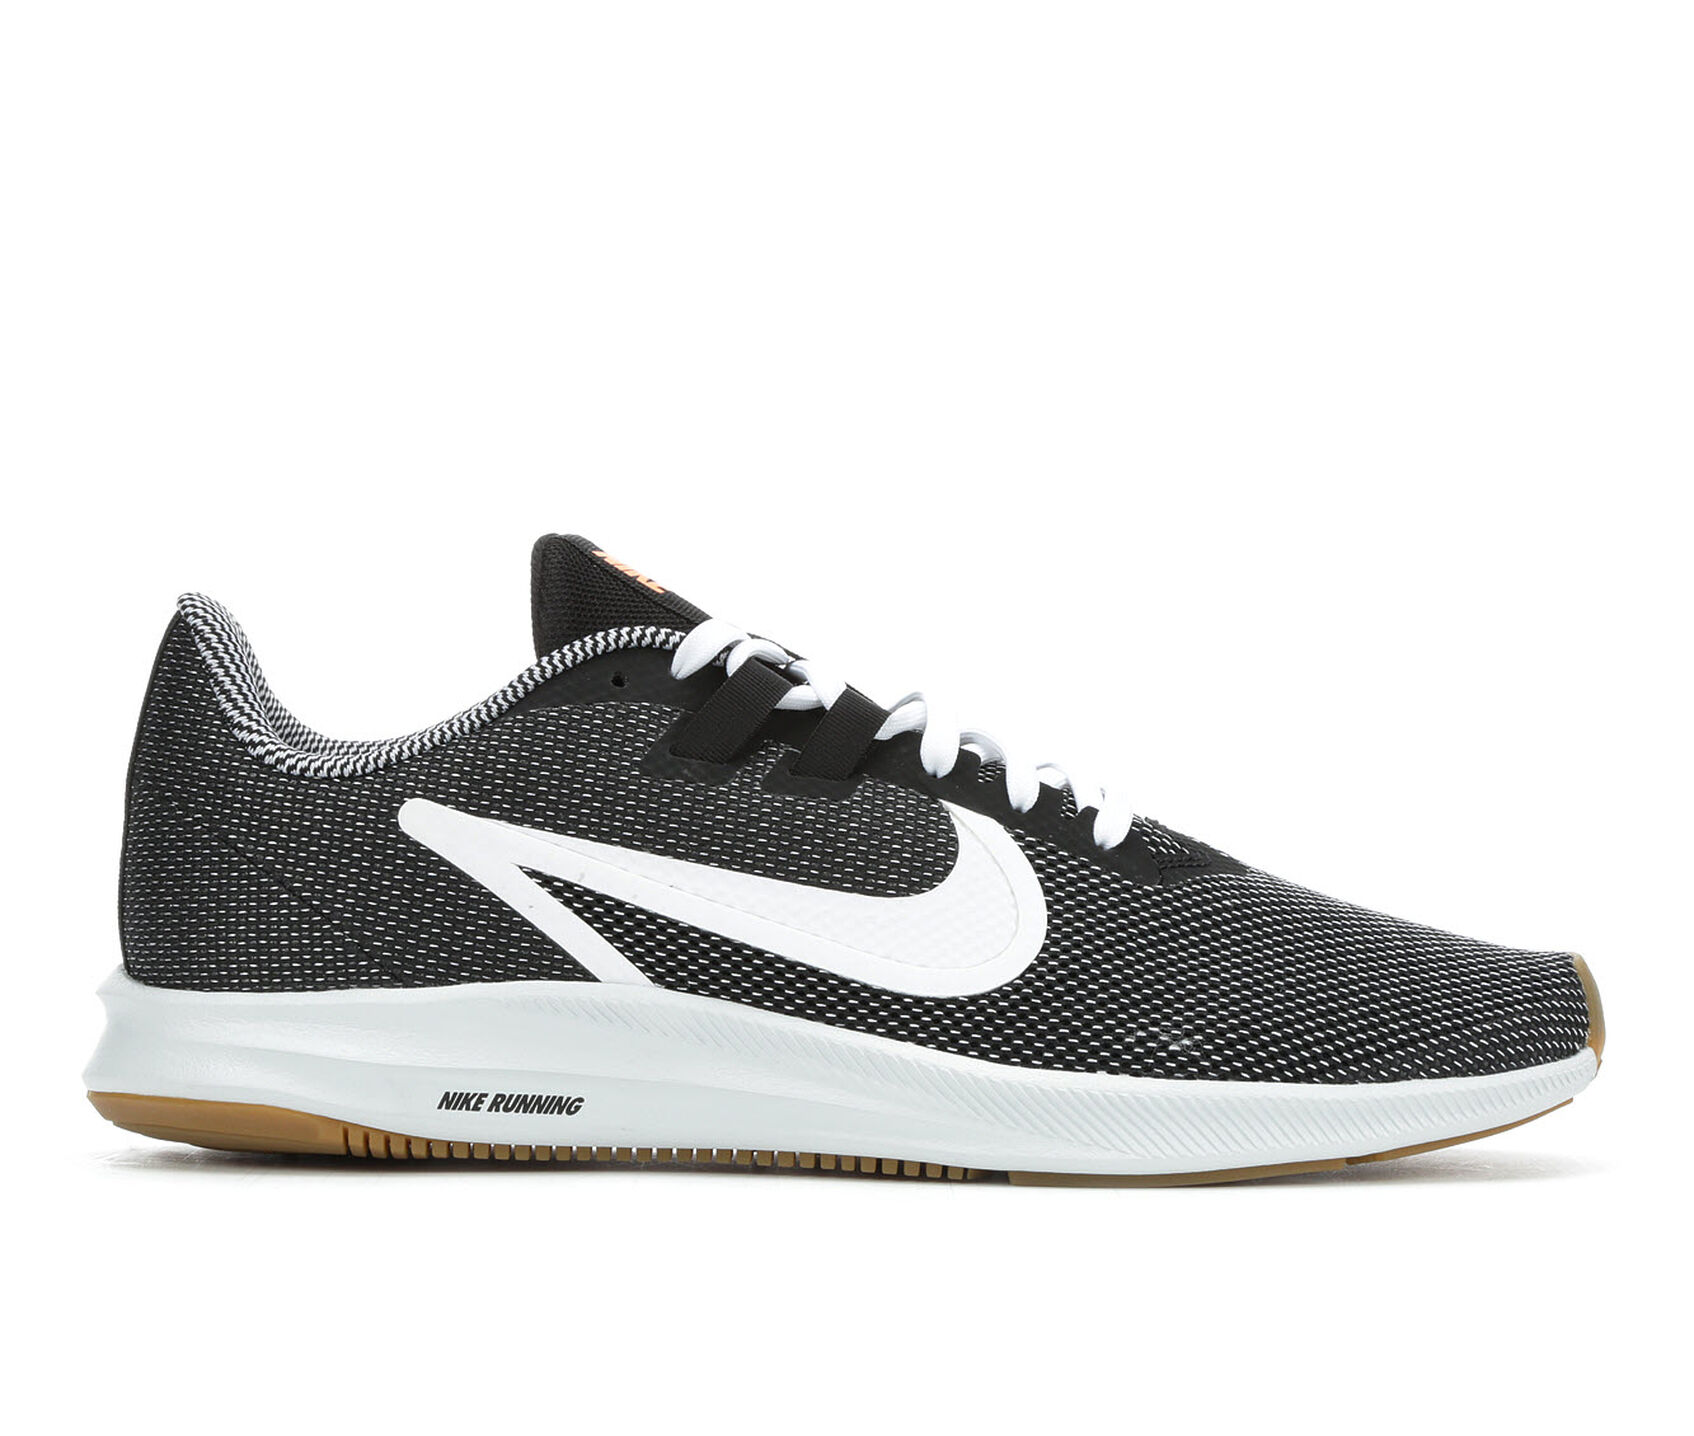 separation shoes 68a5c 50798 Men's Nike Downshifter 9 SE Running Shoes